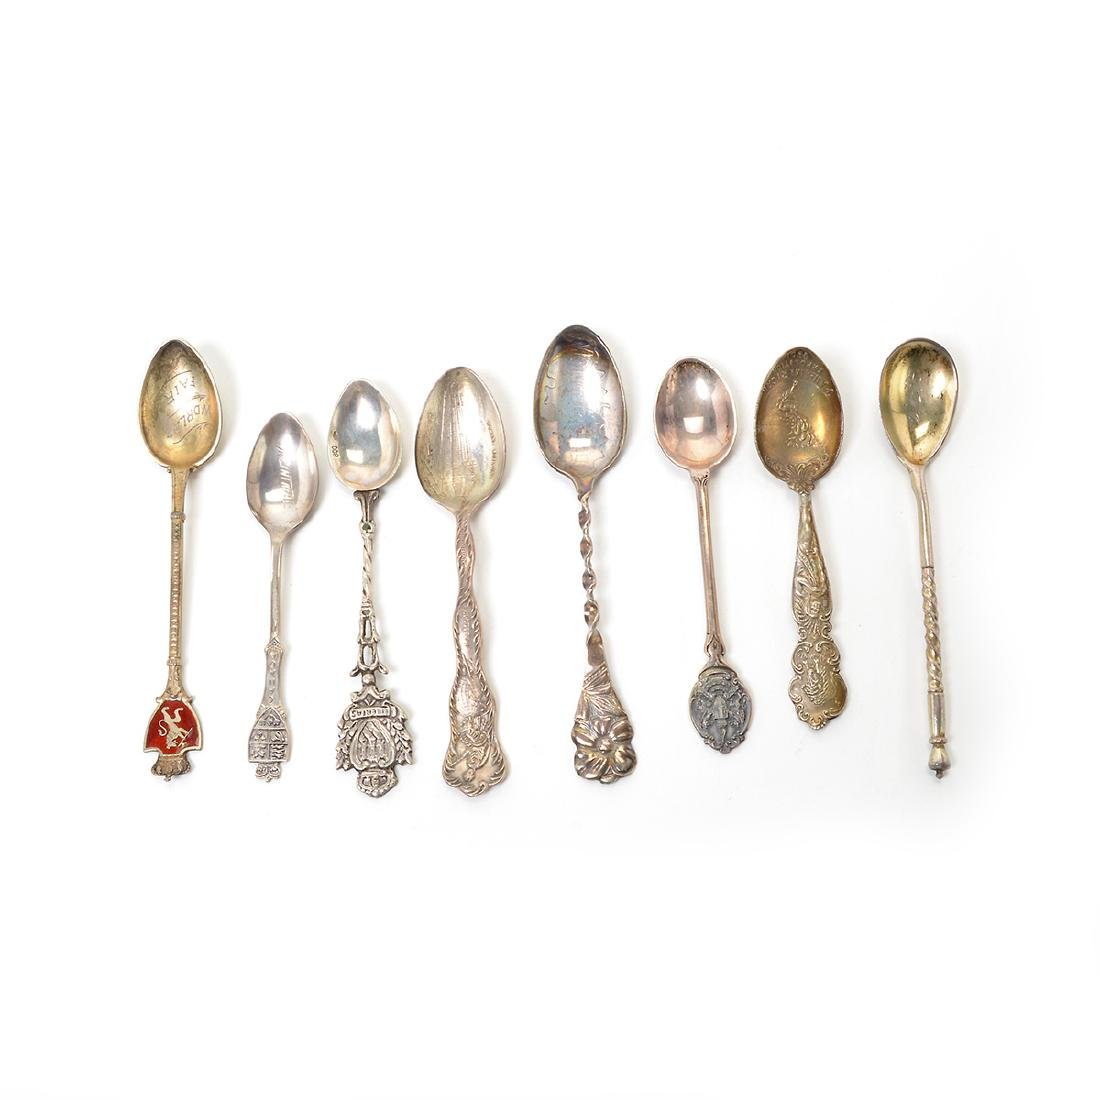 Assorted Coin Silver Flatware with Souvenir Spoons - 3